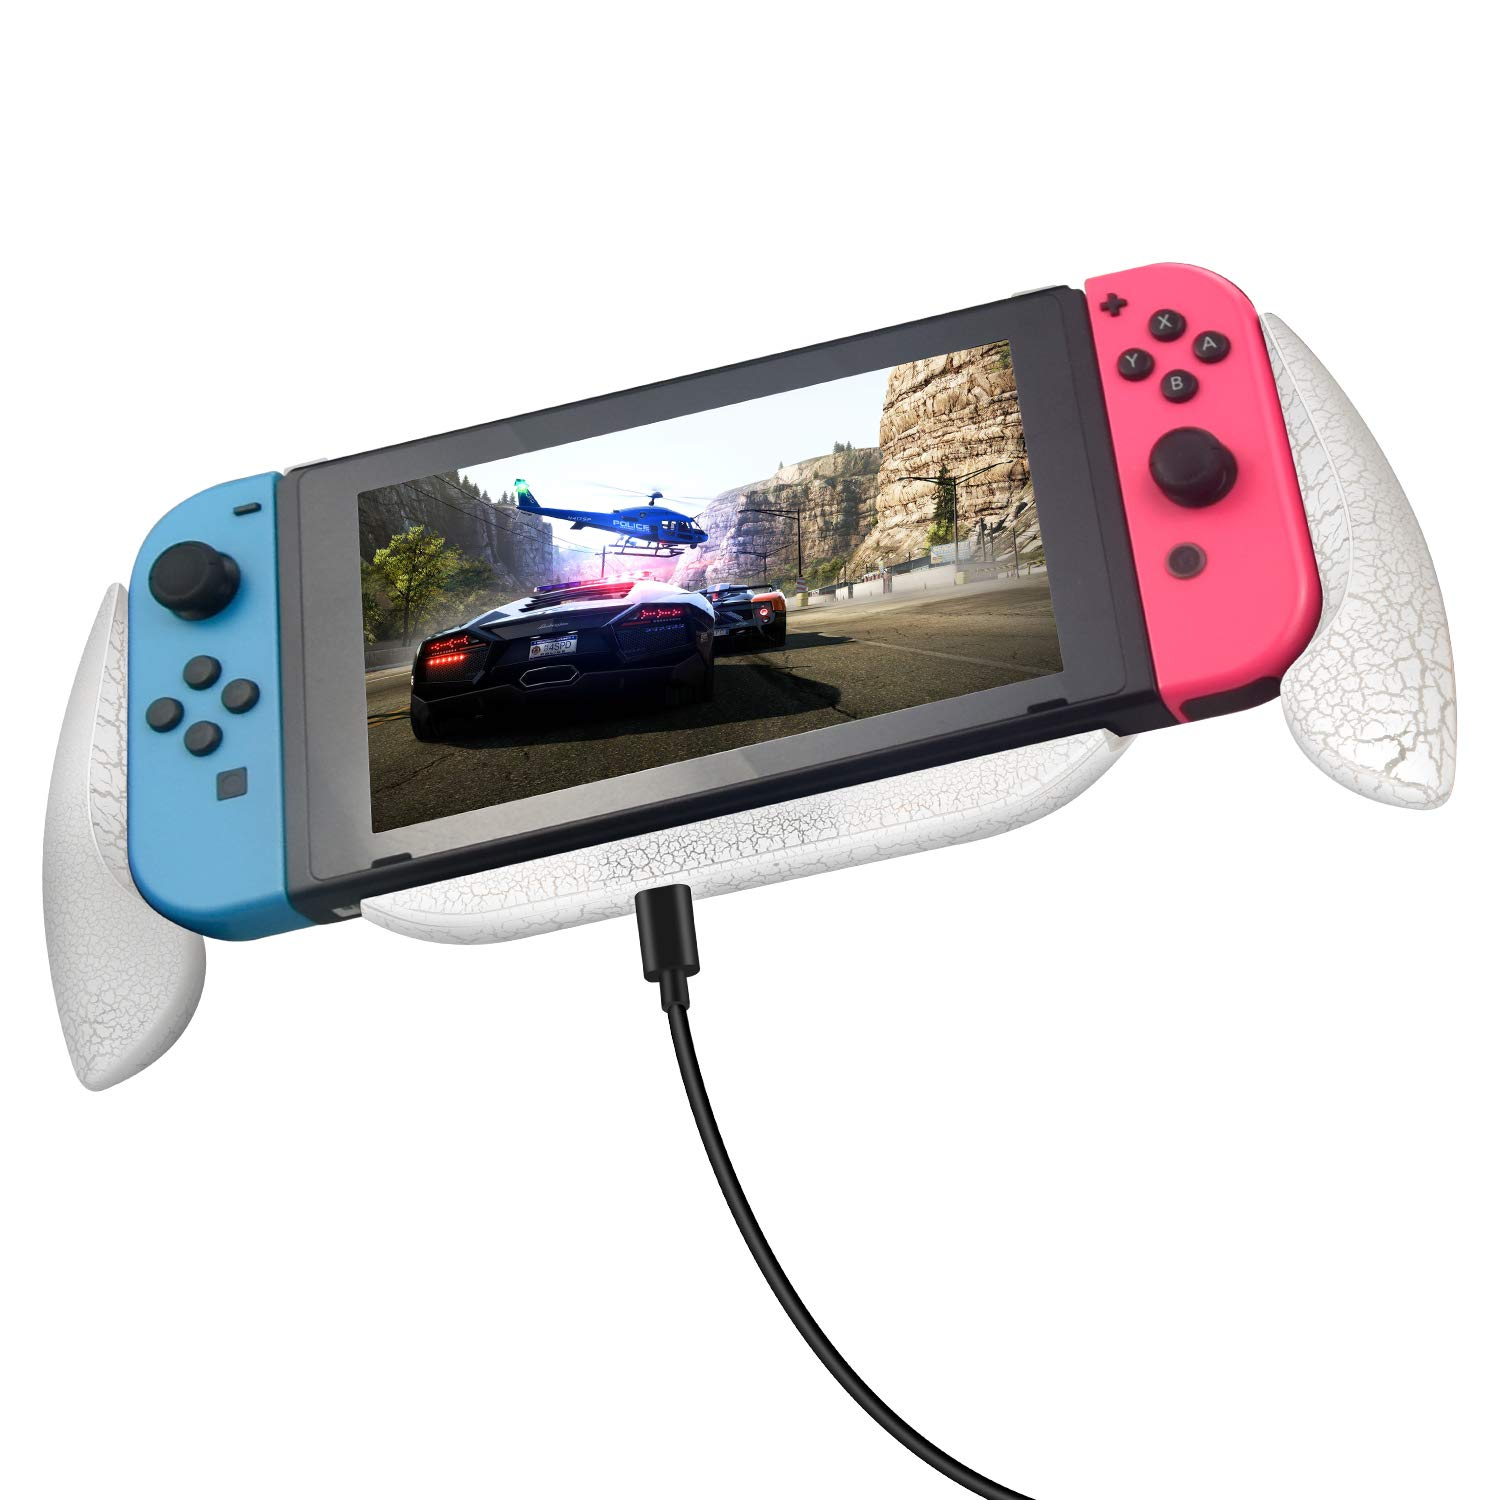 Lammcou Charging Grip for Nintendo Switch Grip Handle Holder Stand Comfortable & Ergonomic Switch Grip Case with Game Storage Case, Fast Charge Compatible 5V 2A AC Adapter with Type-C Cable - White by Lammcou